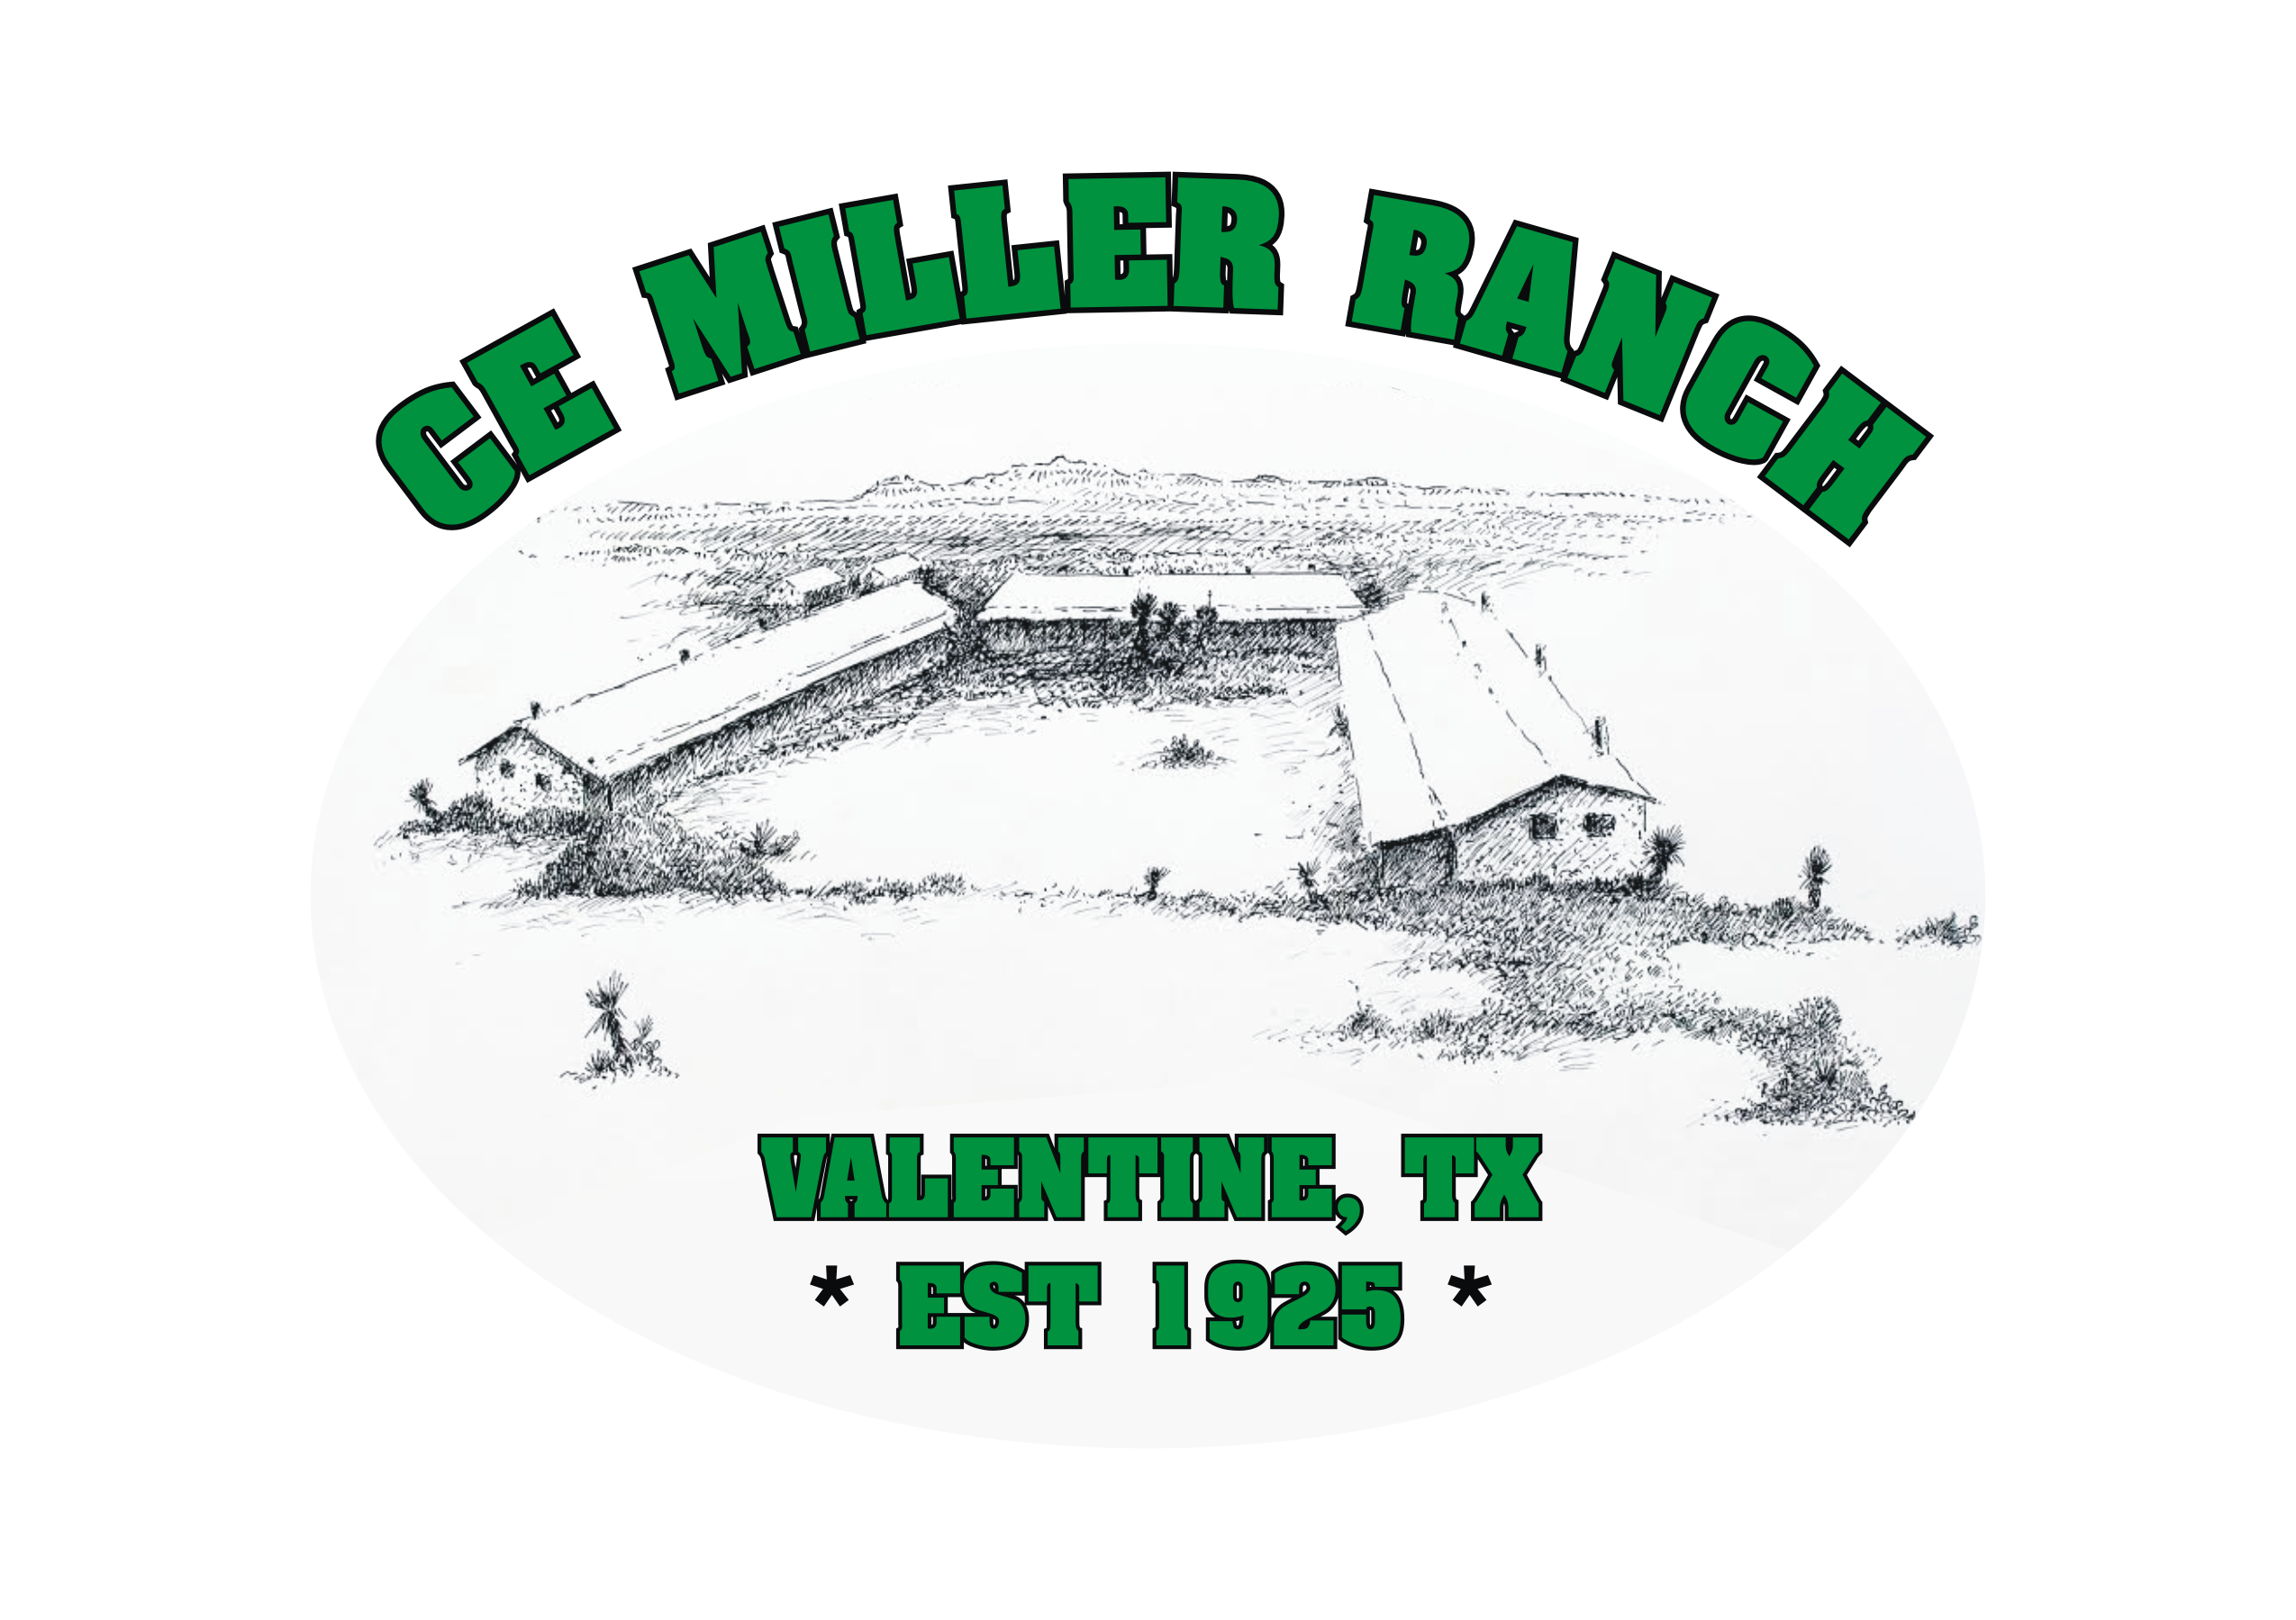 CE Miller Ranch